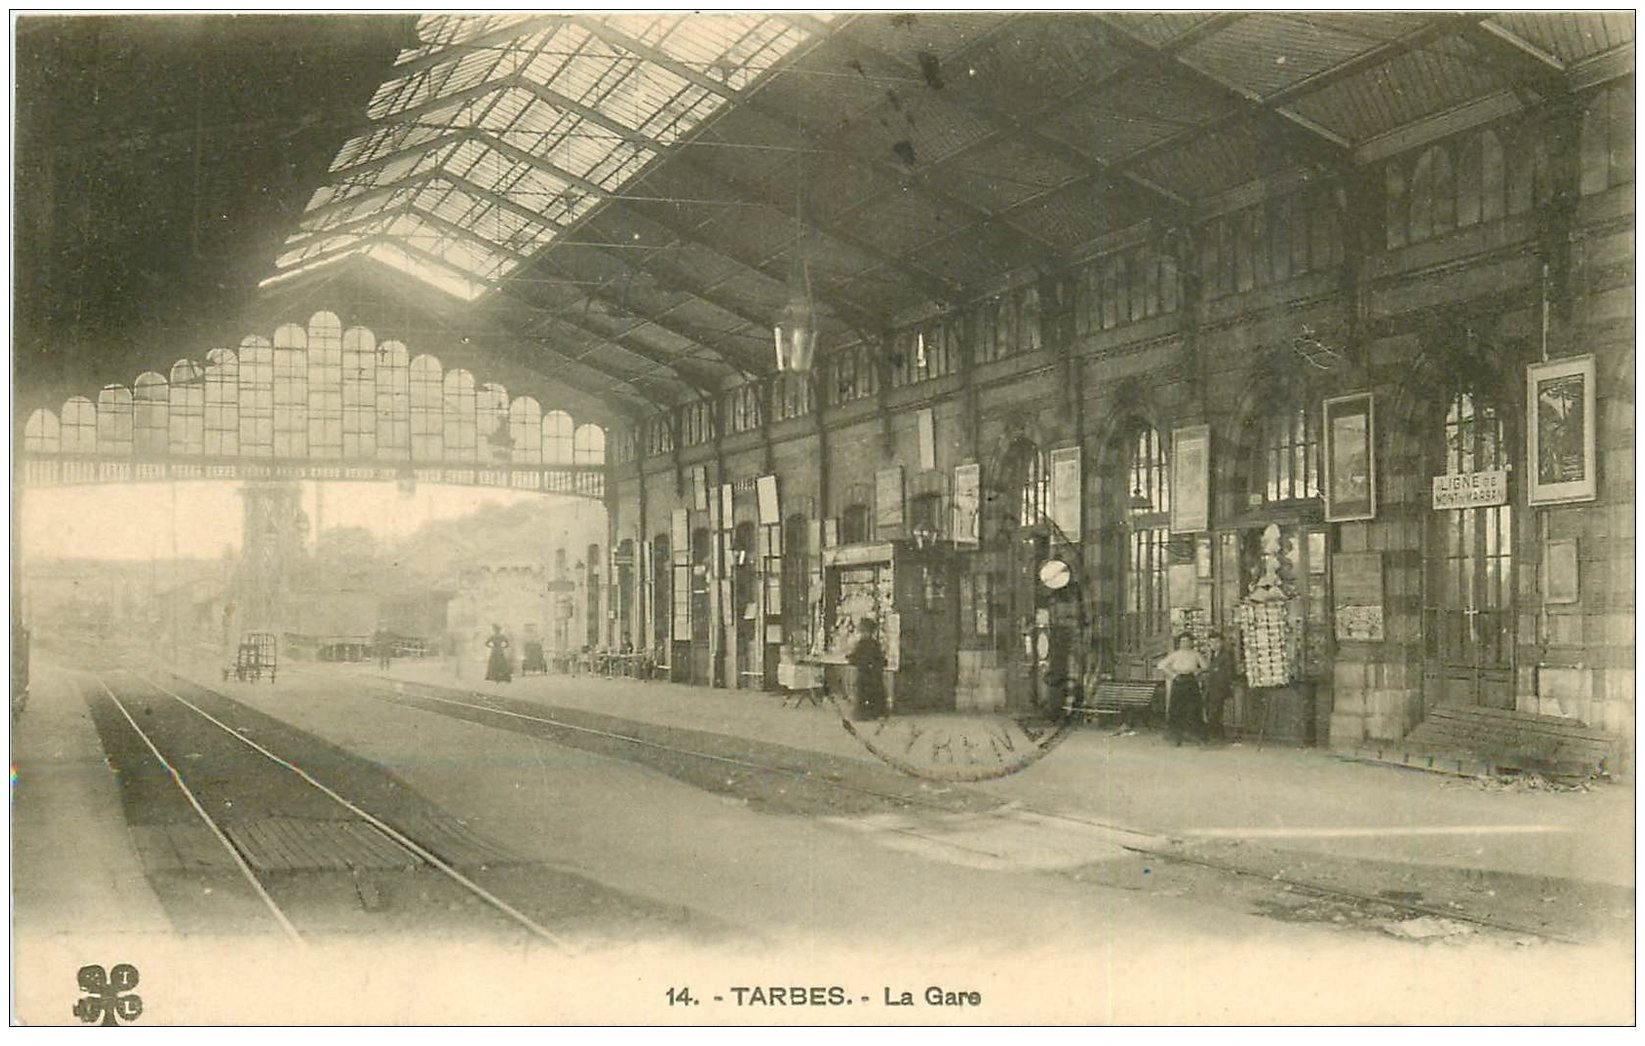 65 tarbes la gare 1915 vendeuse de cartes postales sur tourniquet. Black Bedroom Furniture Sets. Home Design Ideas